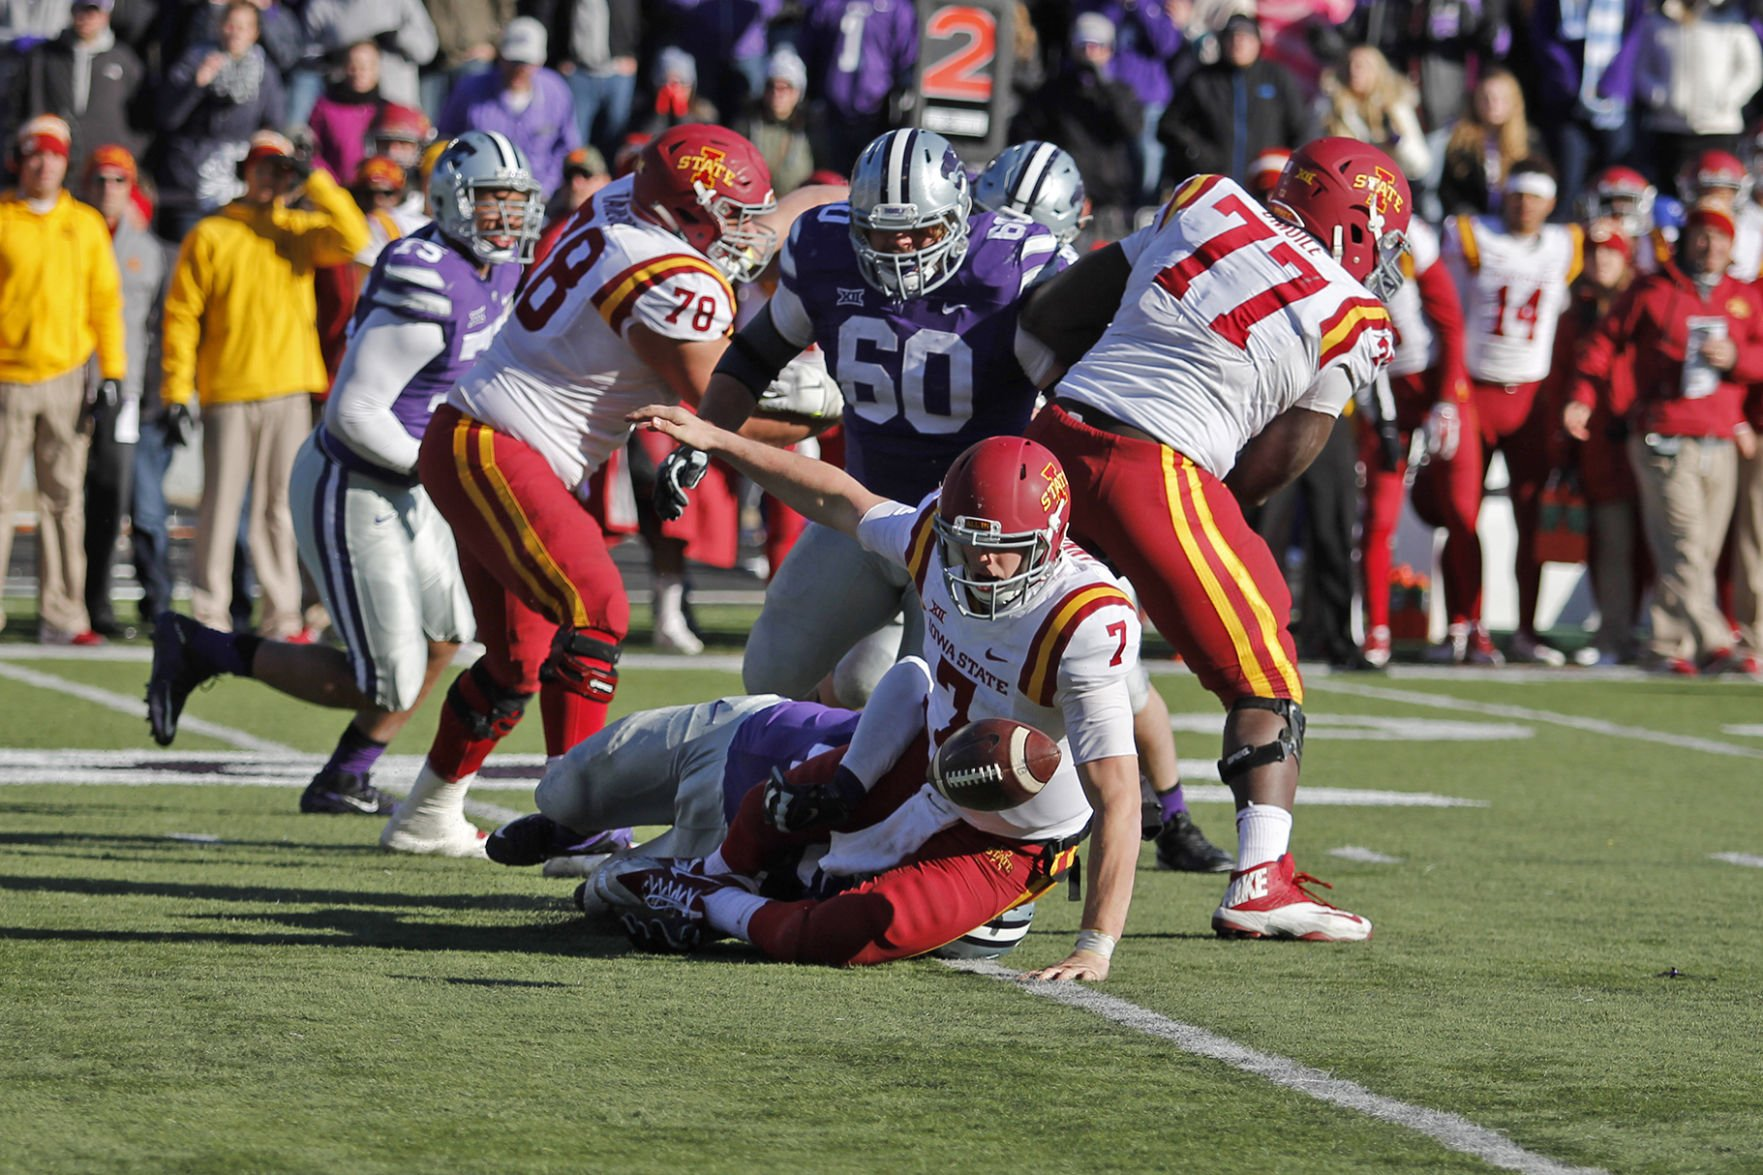 Kansas State Wildcats vs. Iowa State Cyclones Preview and Prediction